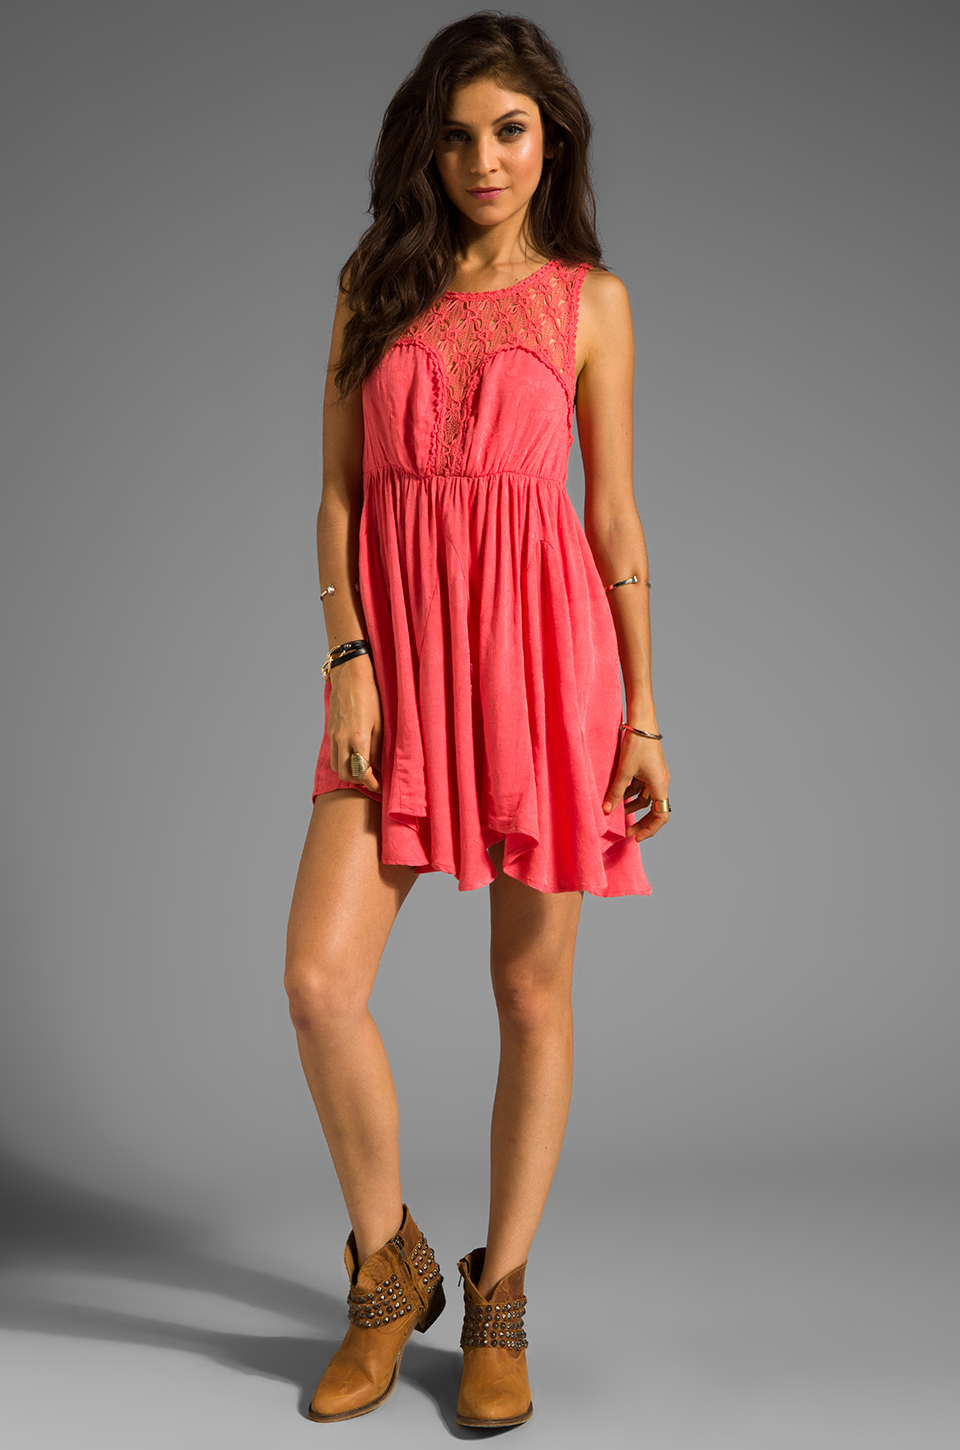 Free People Fiesta Dress in Coral